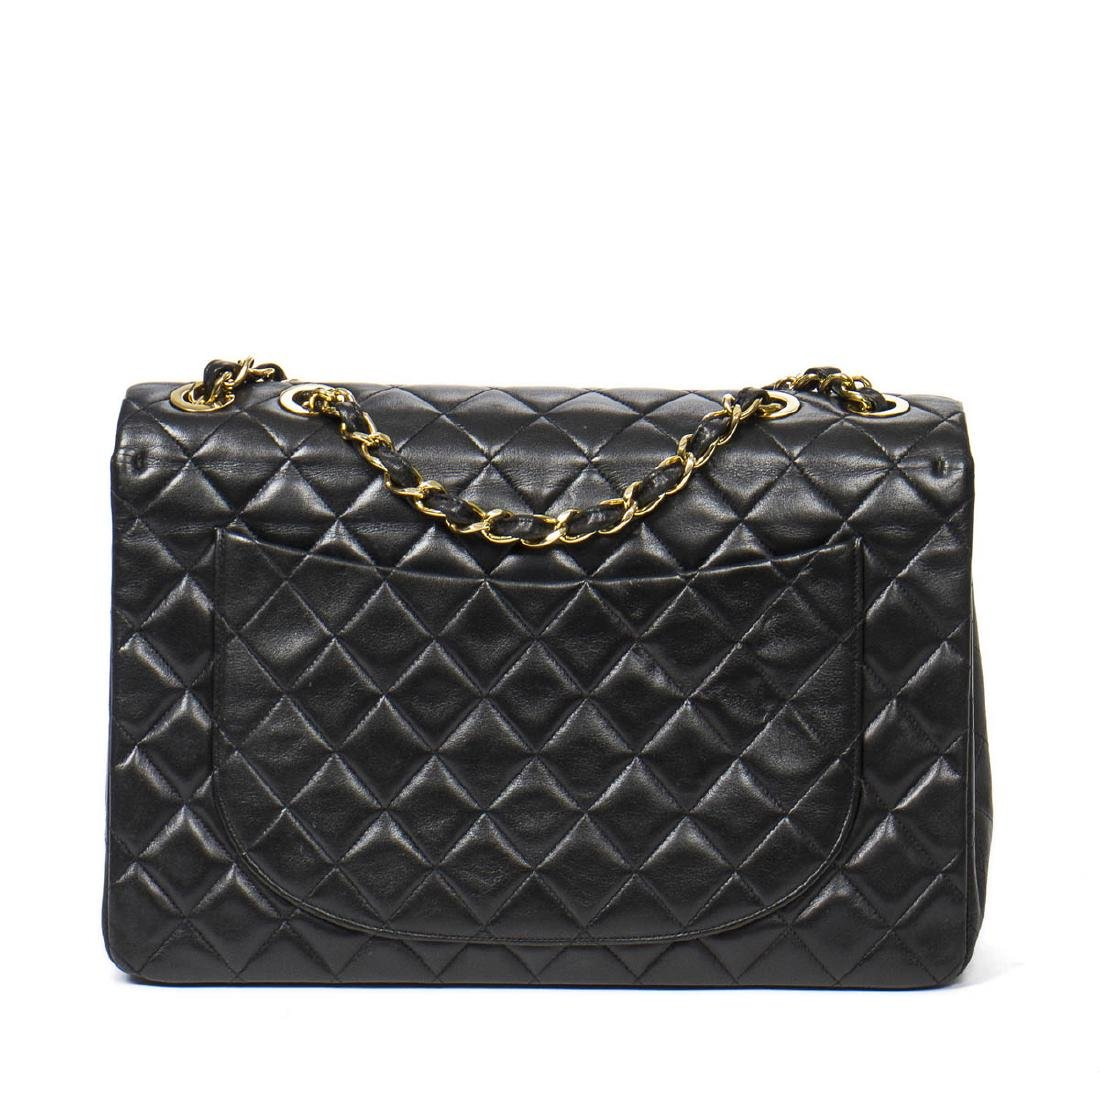 Chanel Maxi Jumbo in Black Quilted Leather - 5